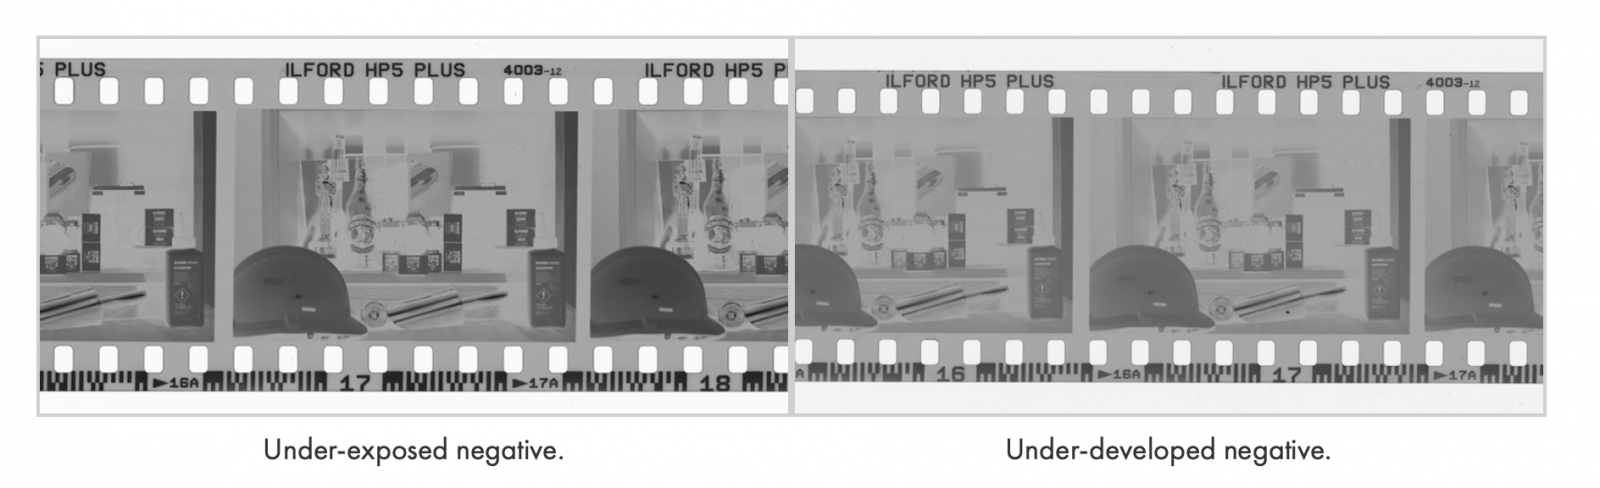 A picture of two photographic negatives side by side. The left hand one shows an under-exposed negative, the right hand one shows an under-developed negative.